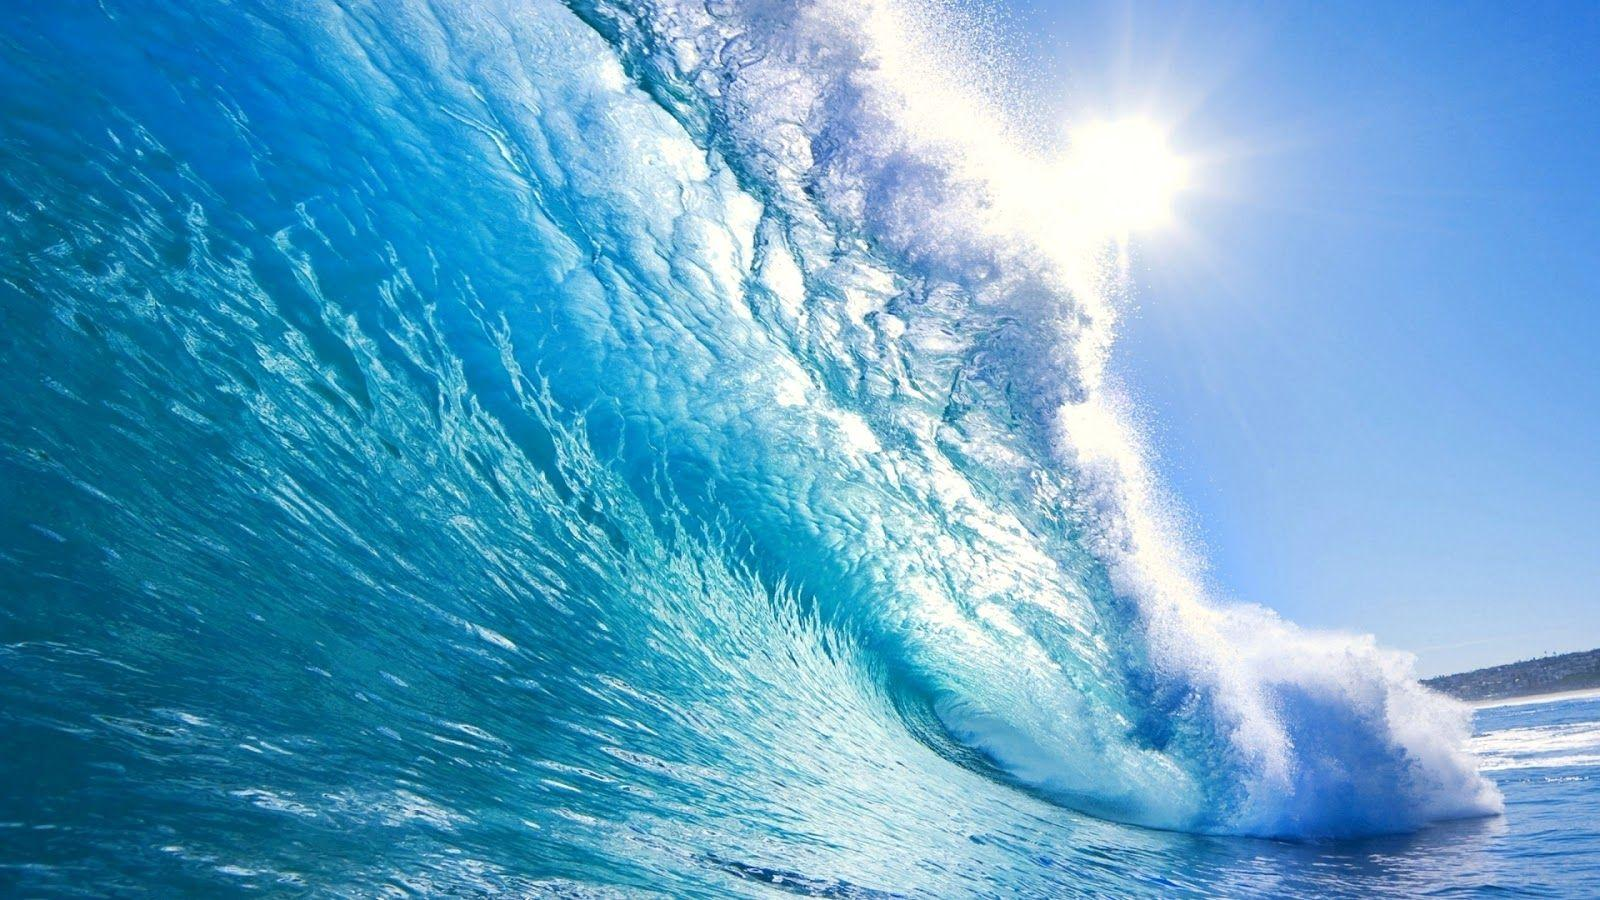 Waves Wallpapers Wallpaper Cave